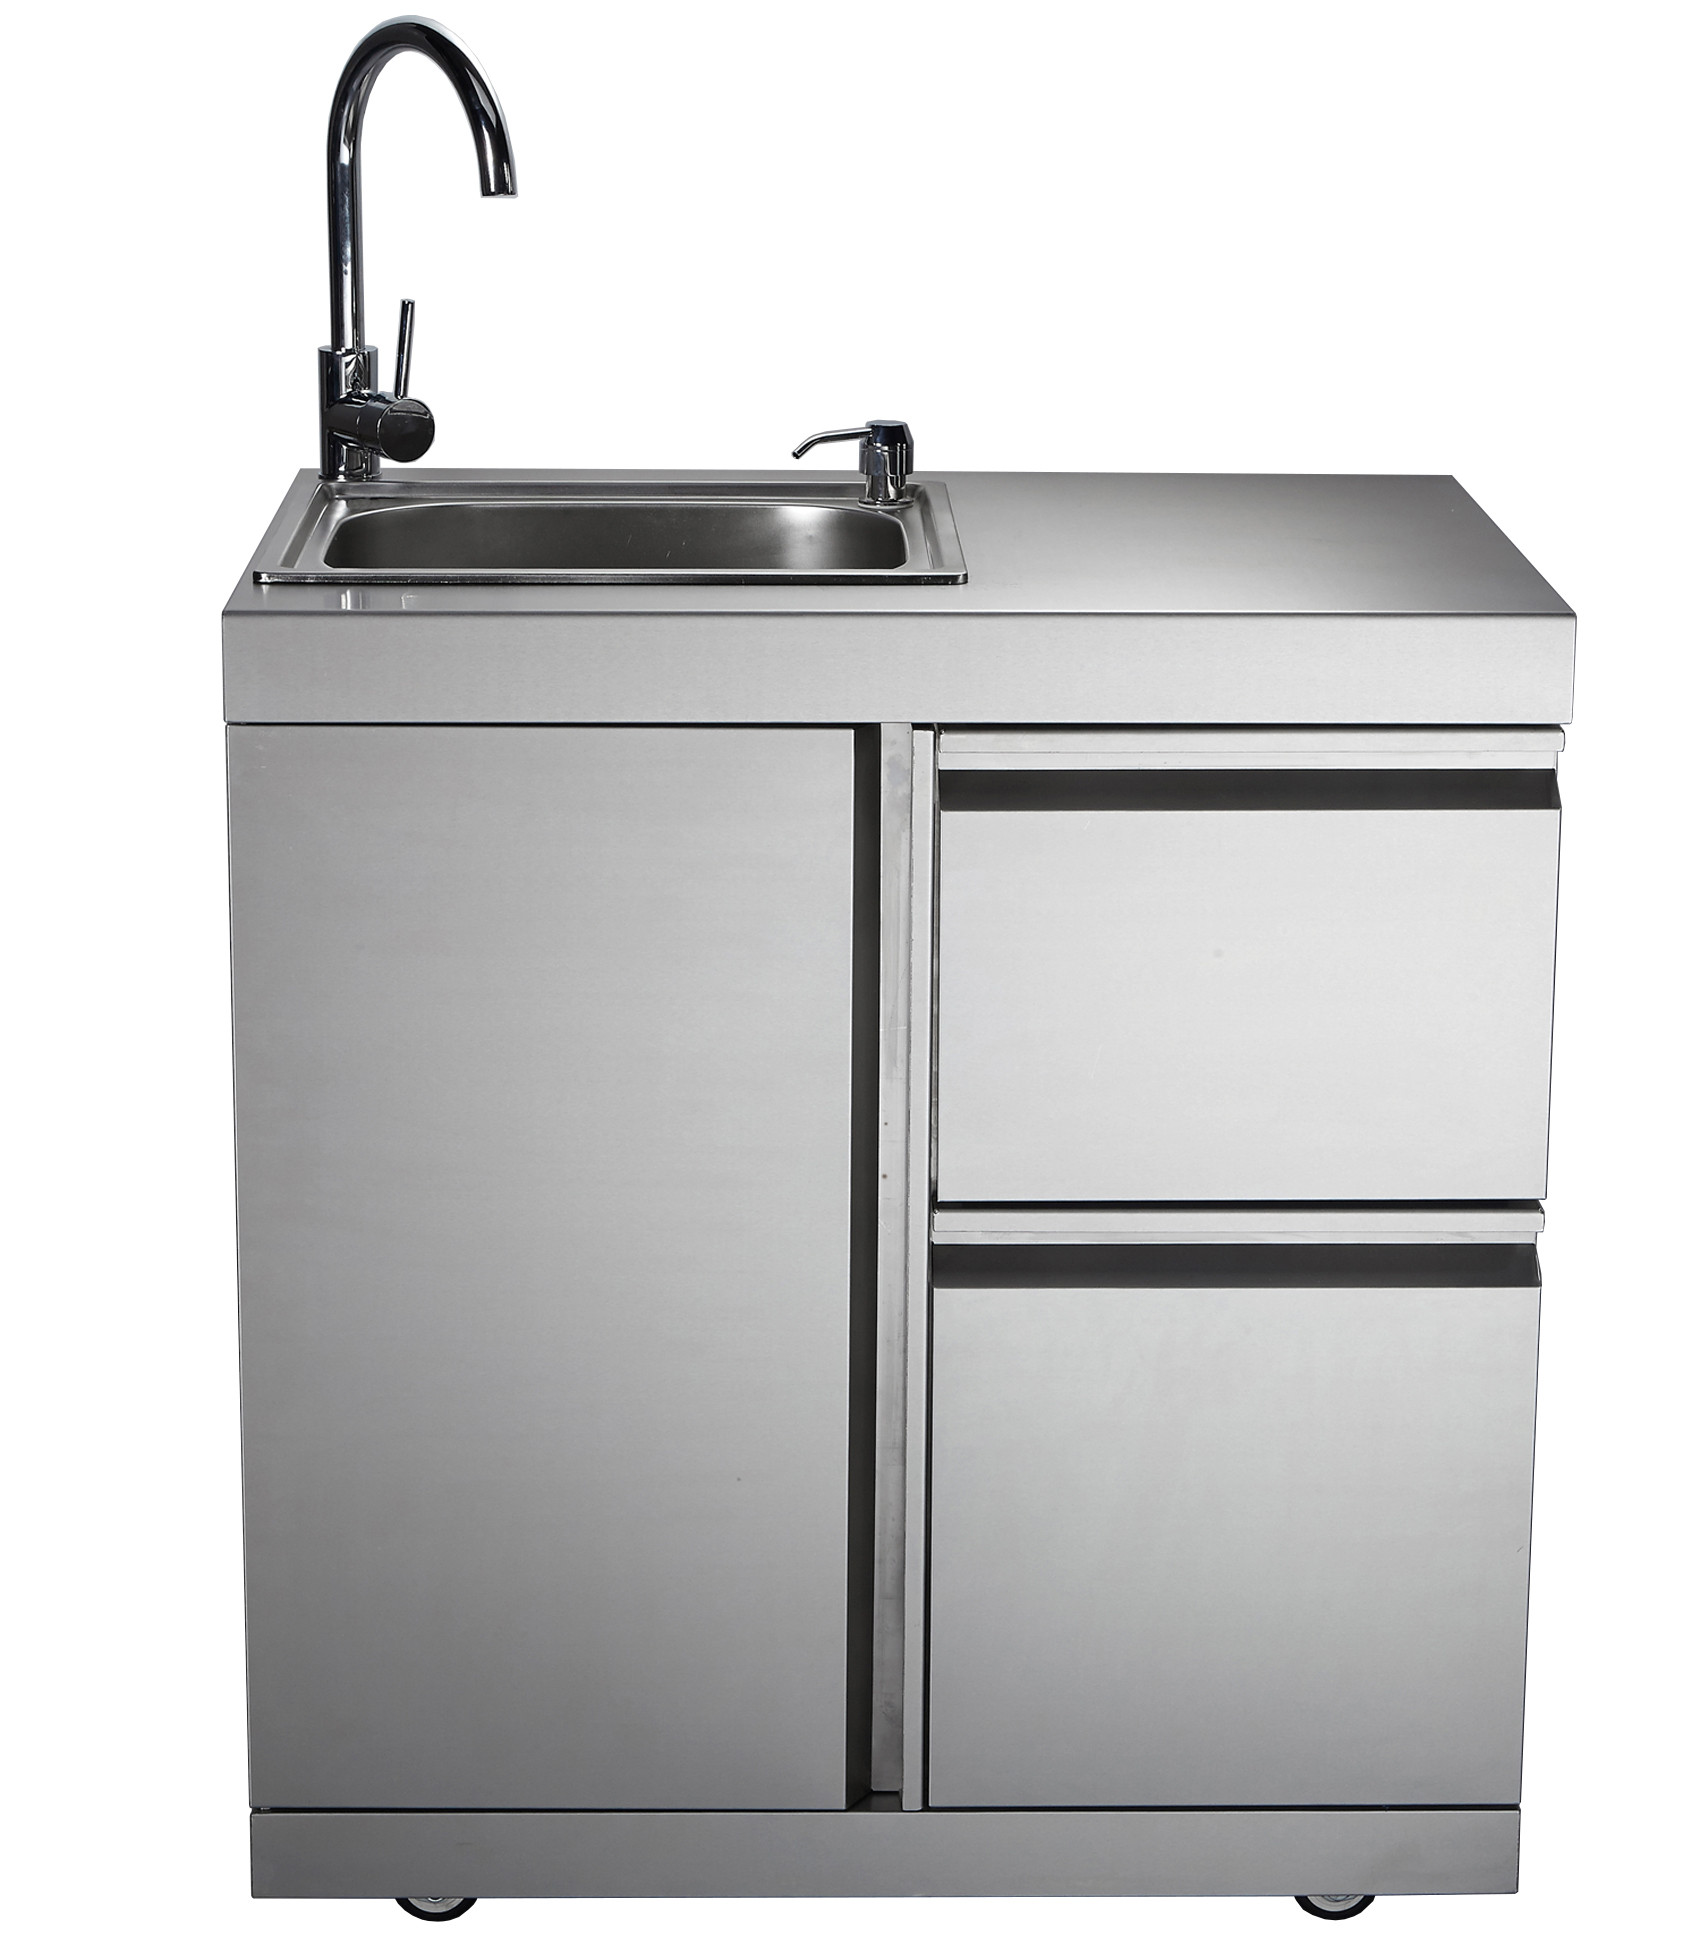 CHEFMASTER GALLEY SERIES SINK MODULE